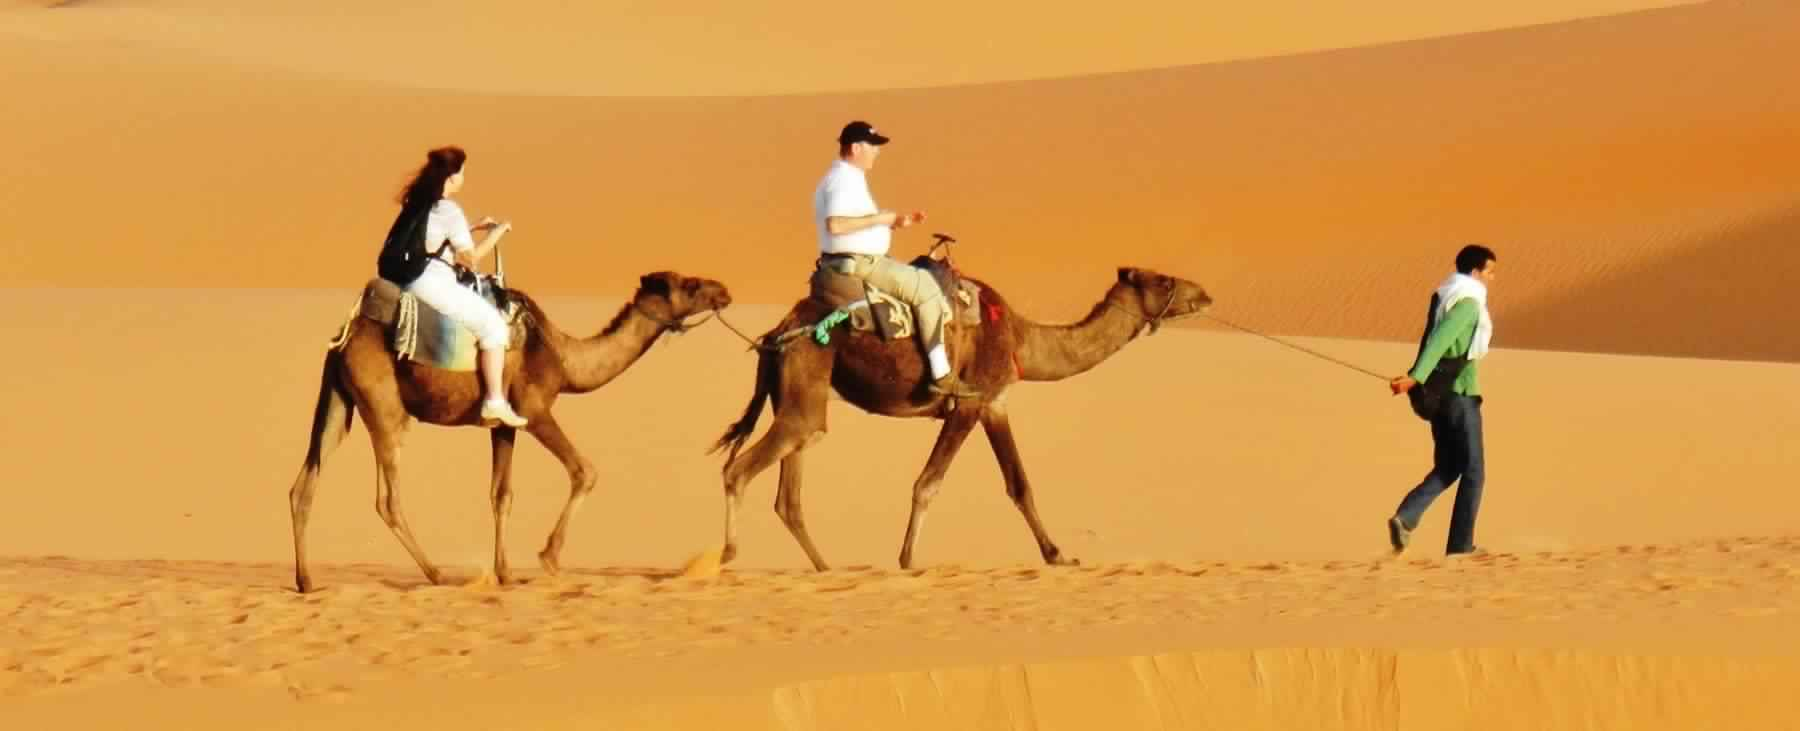 camel rider Camel cavalry, or camelry, is a generic designation for armed forces using  camels as a means  horses shied away from camels, cyrus formed the camels  from his baggage train into an ad hoc camel corps with armed riders replacing  packs.